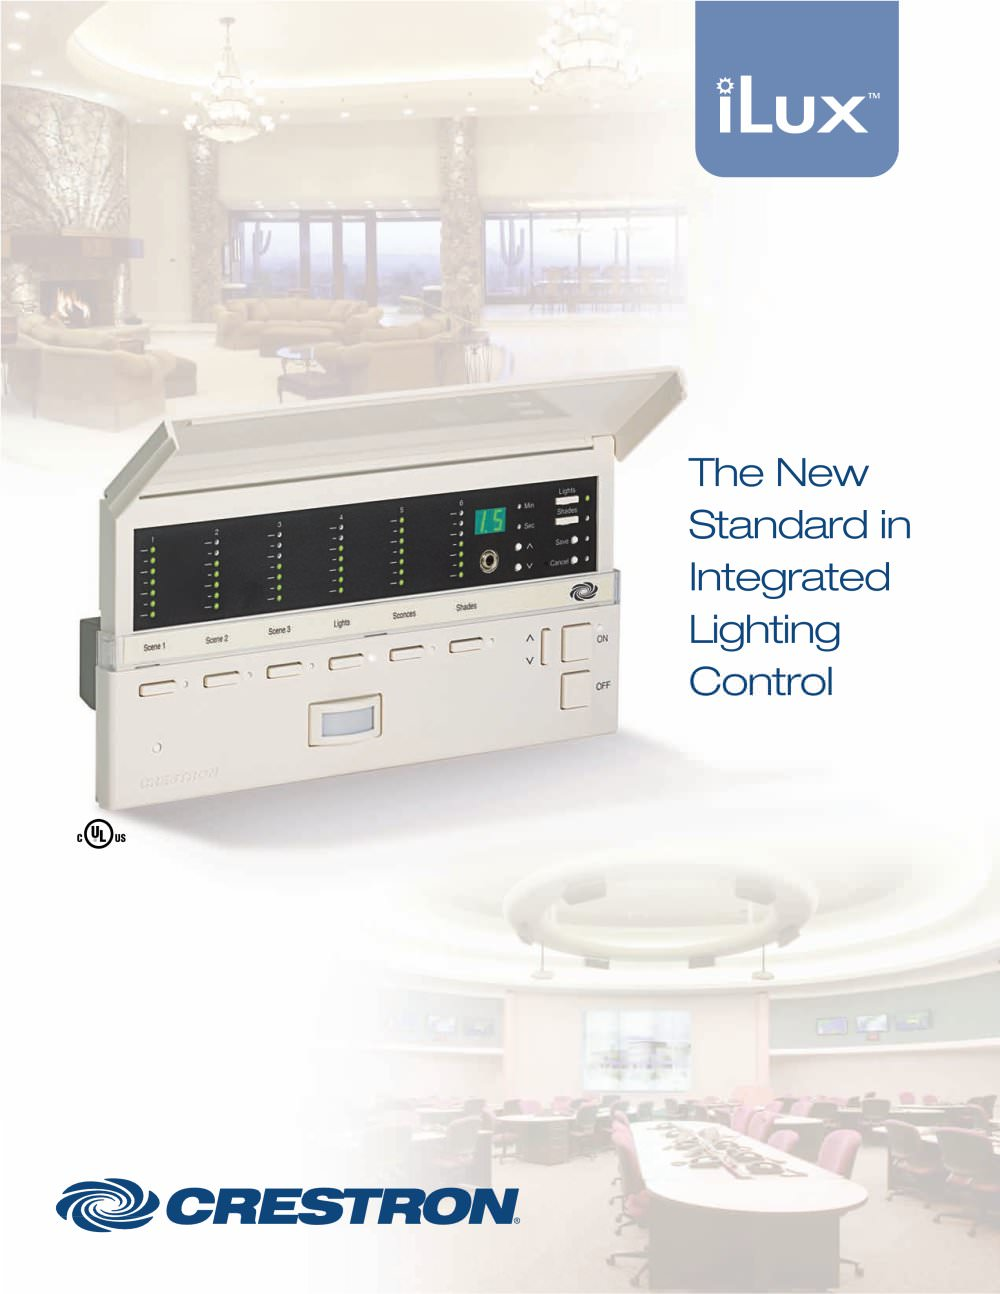 Ilux Crestron Pdf Catalogues Documentation Brochures Lighting Dimmer Wire Diagram 1 14 Pages